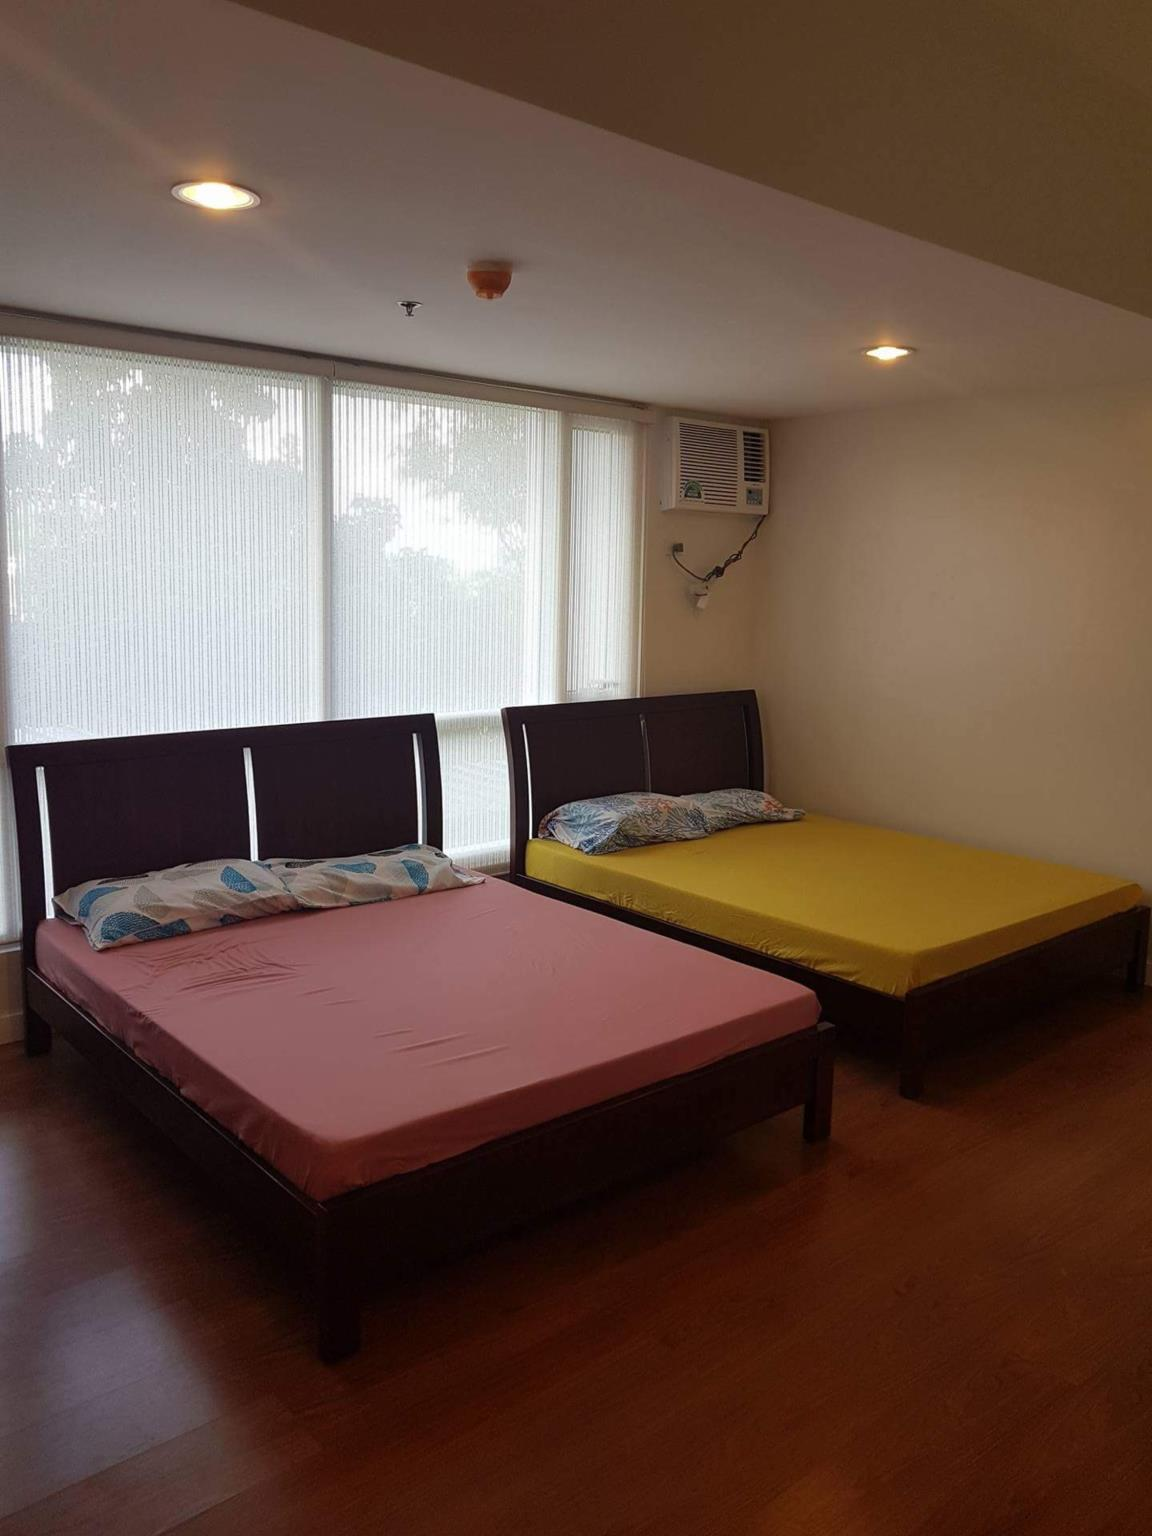 Marco Polo Montainview Flat 208 - Hotels Information/Map/Reviews/Reservation